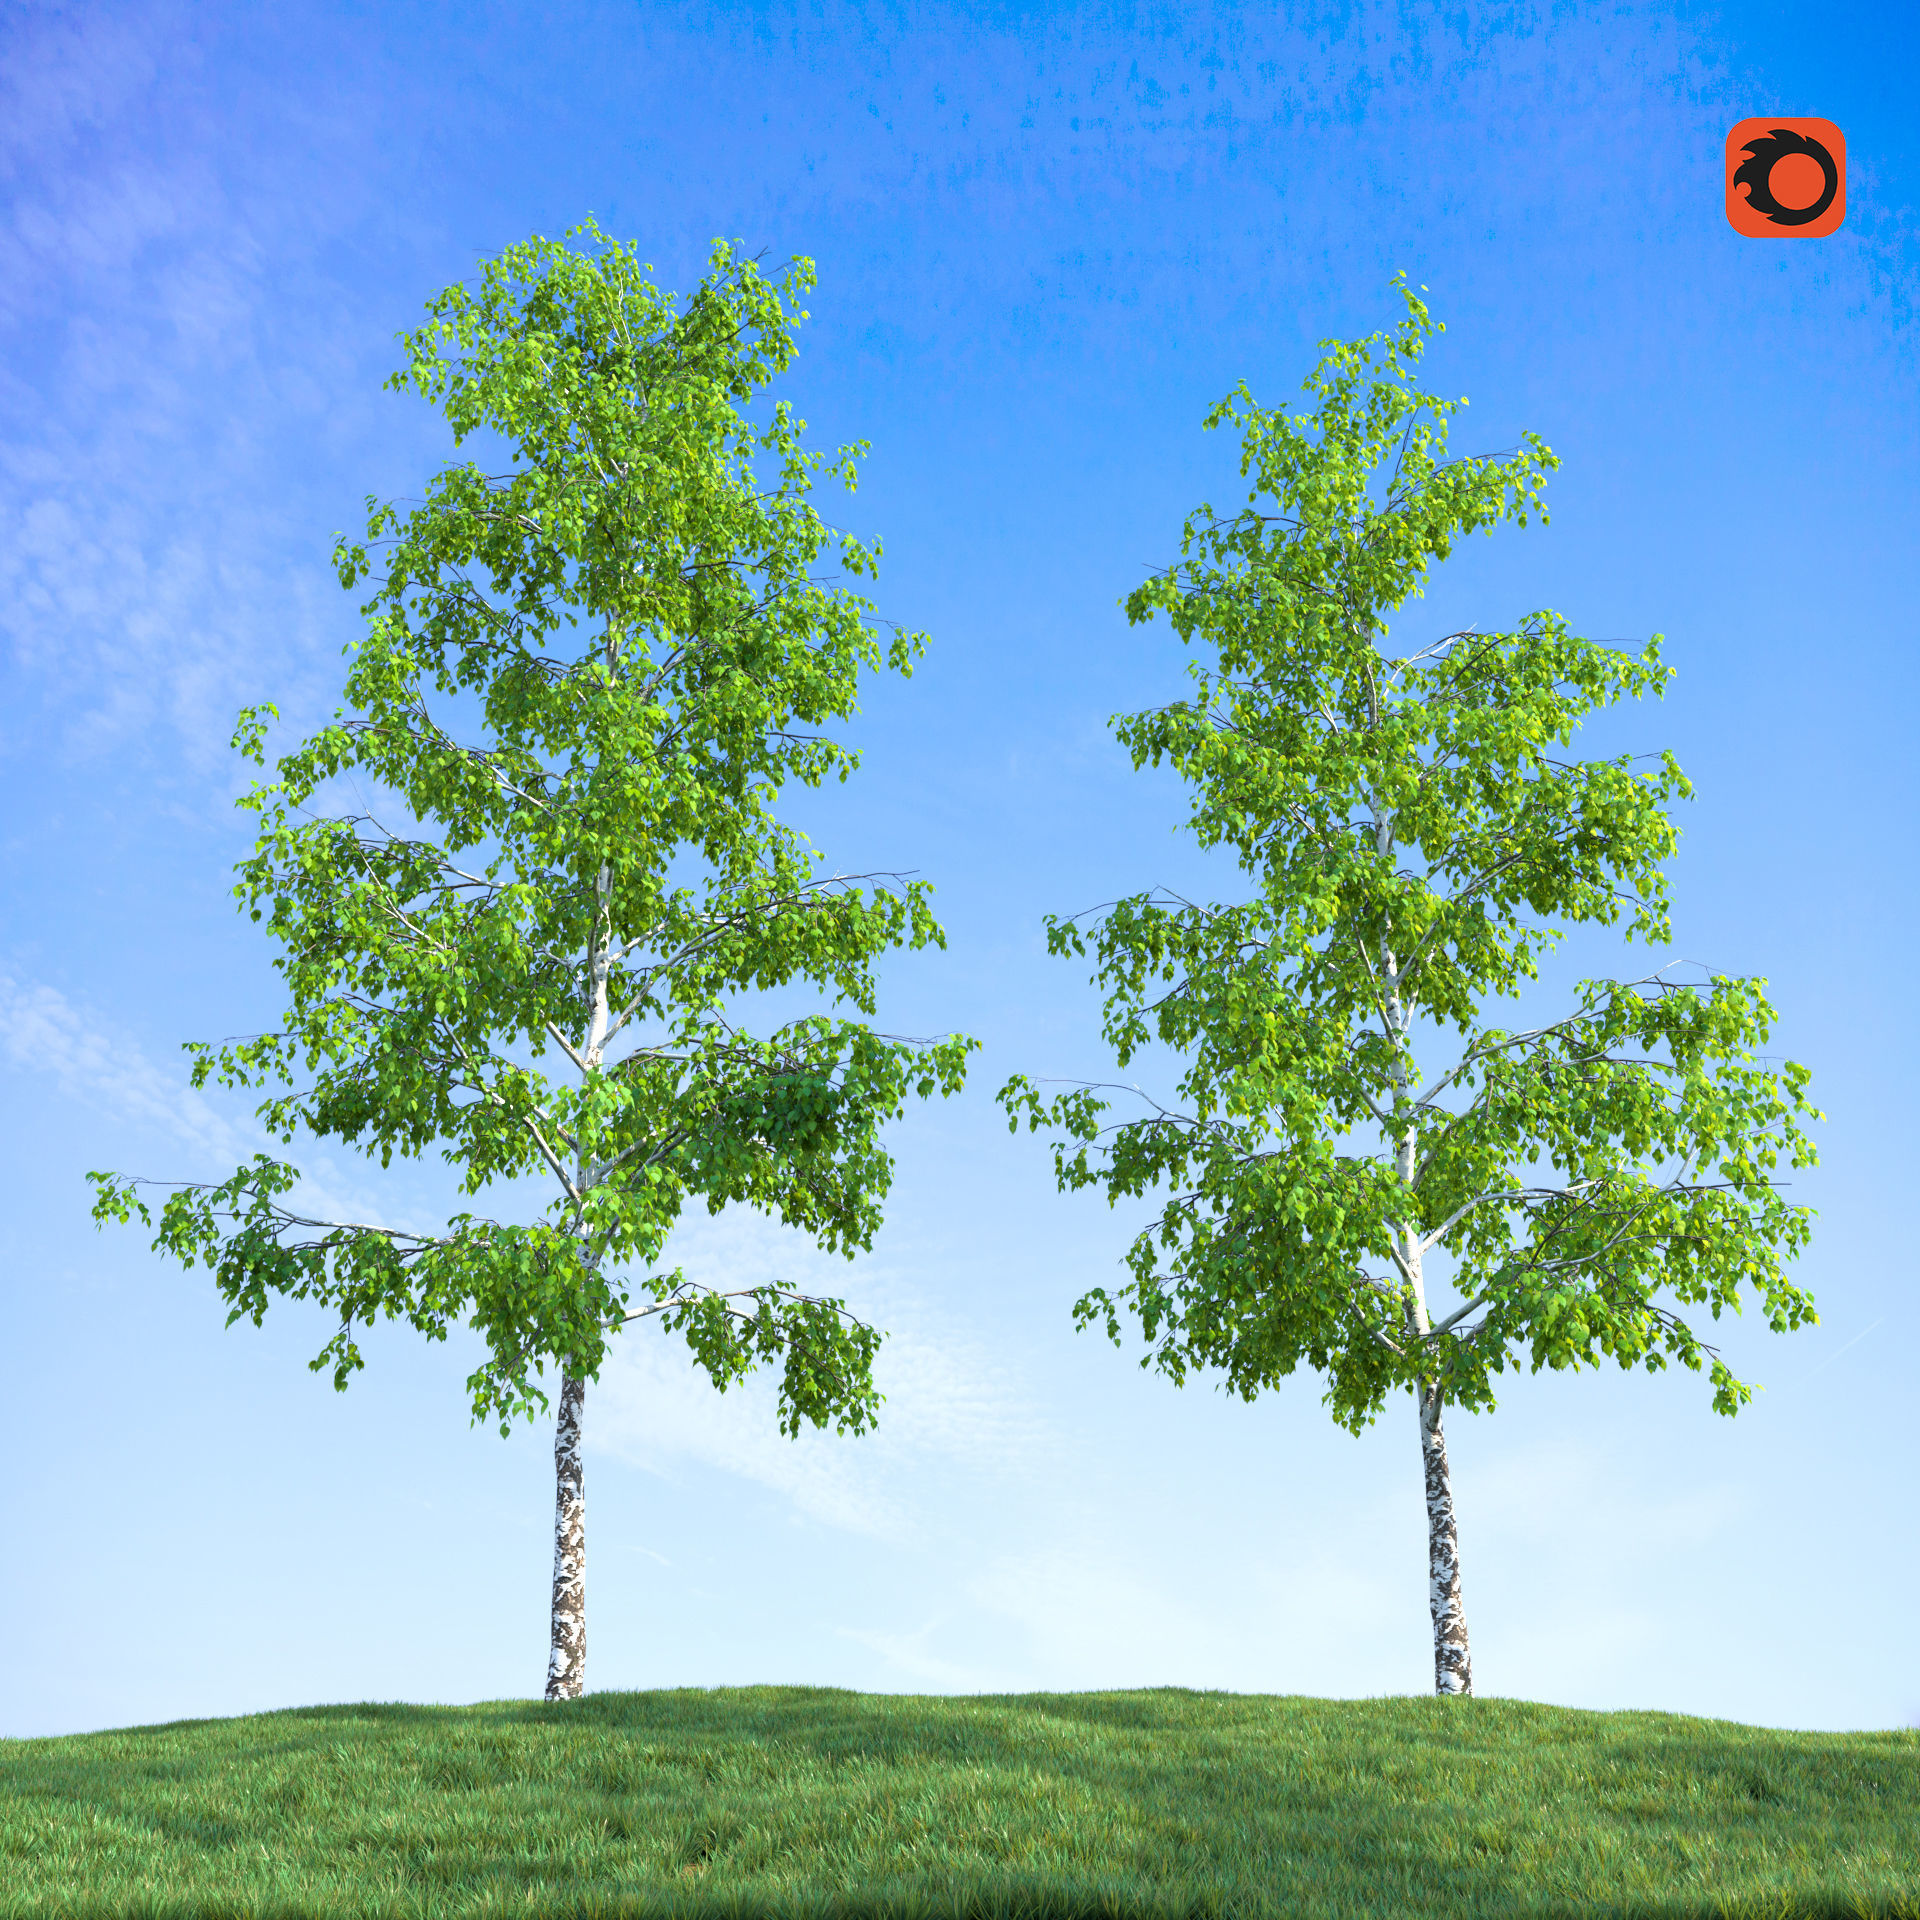 Birch trees with grass